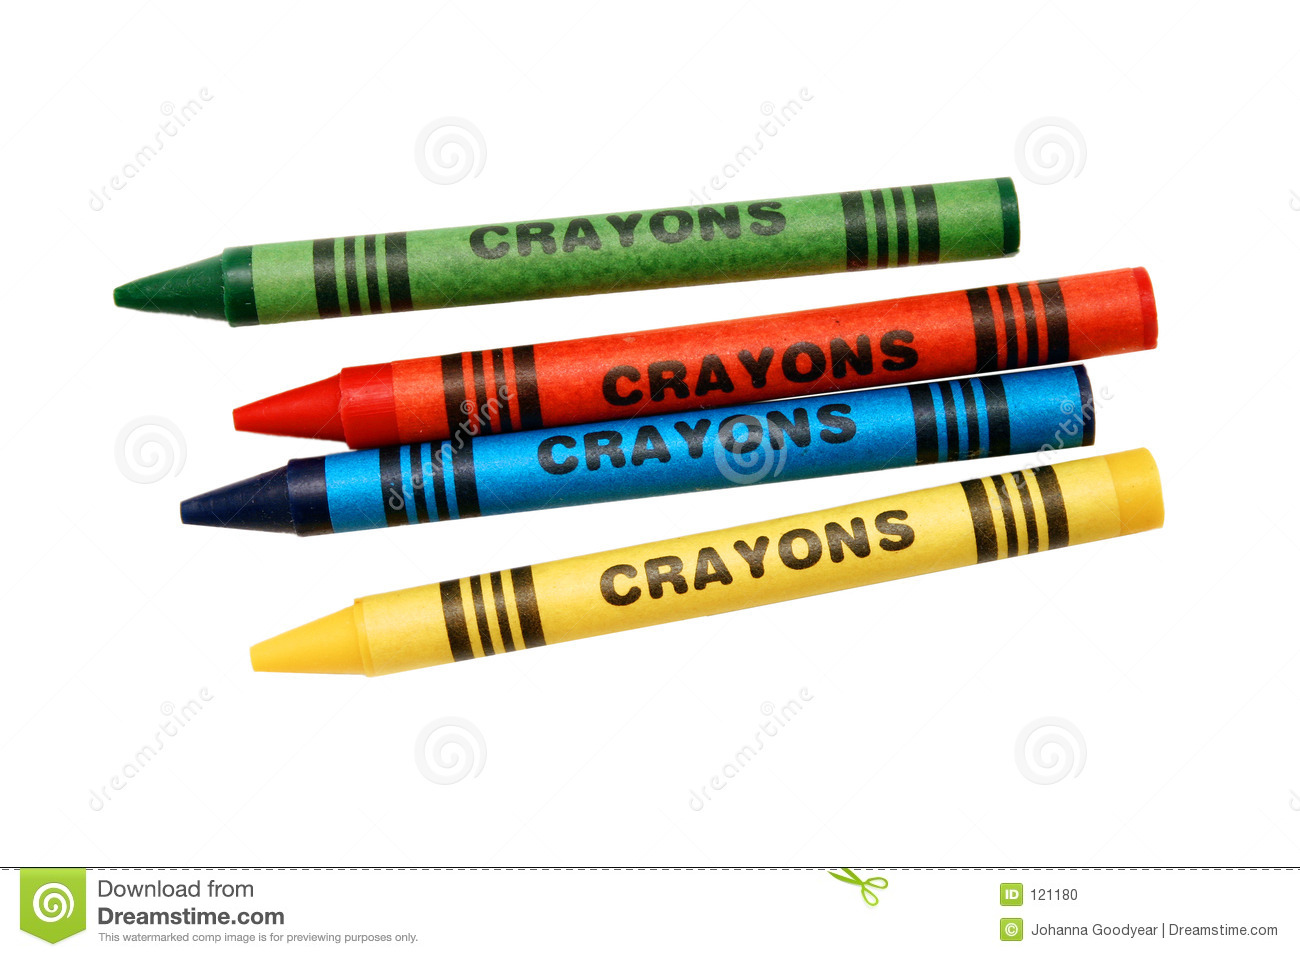 Coloring Crayons Stock Photo - Image: 121180